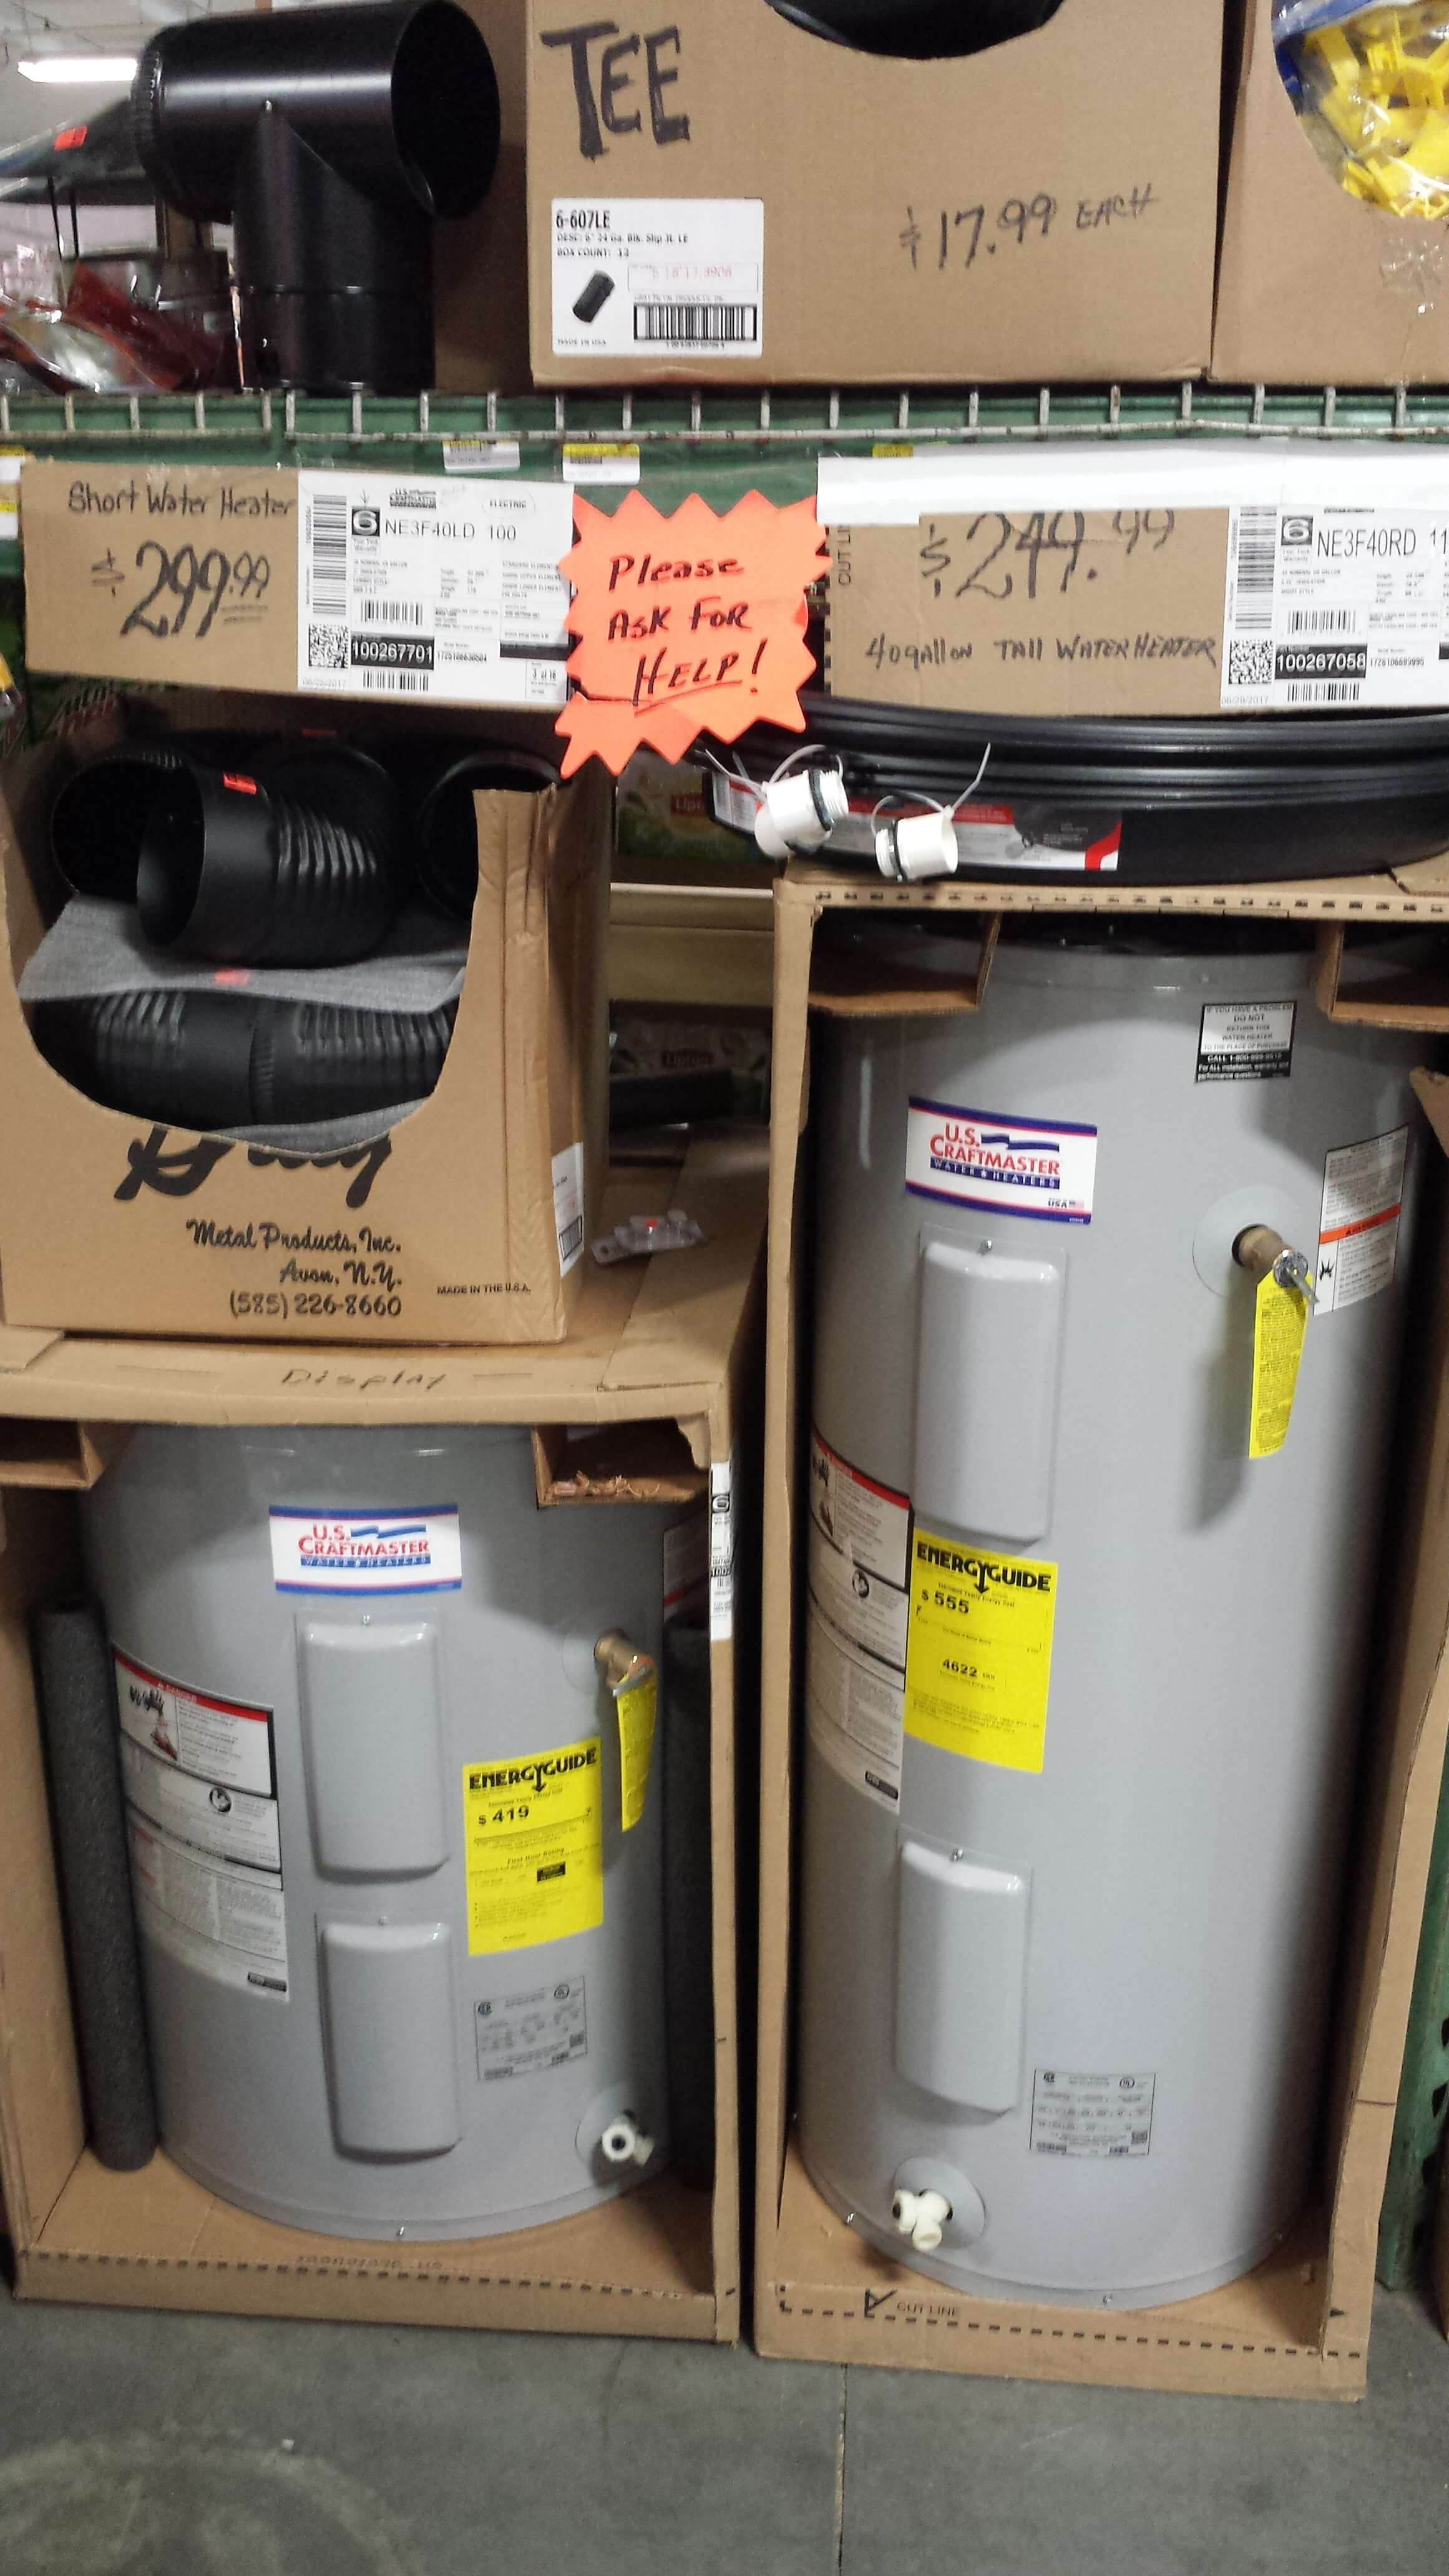 Image of Bargain Foods in Pelzer SC, Hardware Aisle, Hot Water Heaters